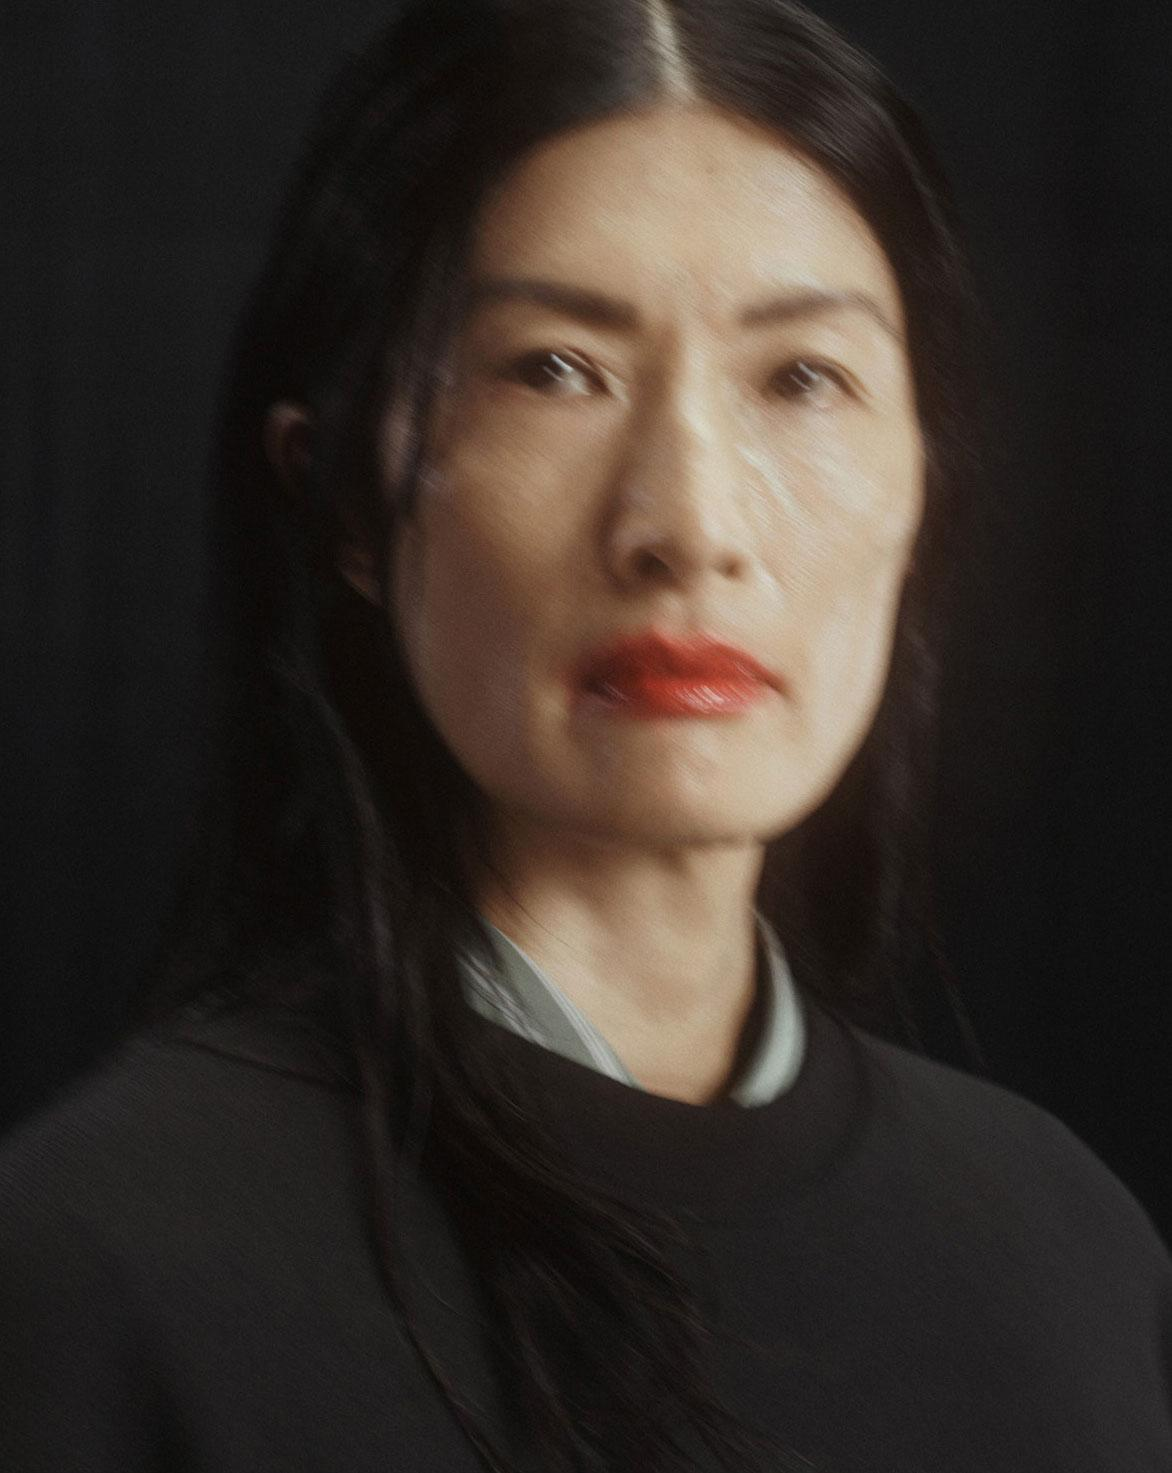 Dries Van Noten A/W 2021 beauty model with smudged glossy red lipstick and slicked back hair